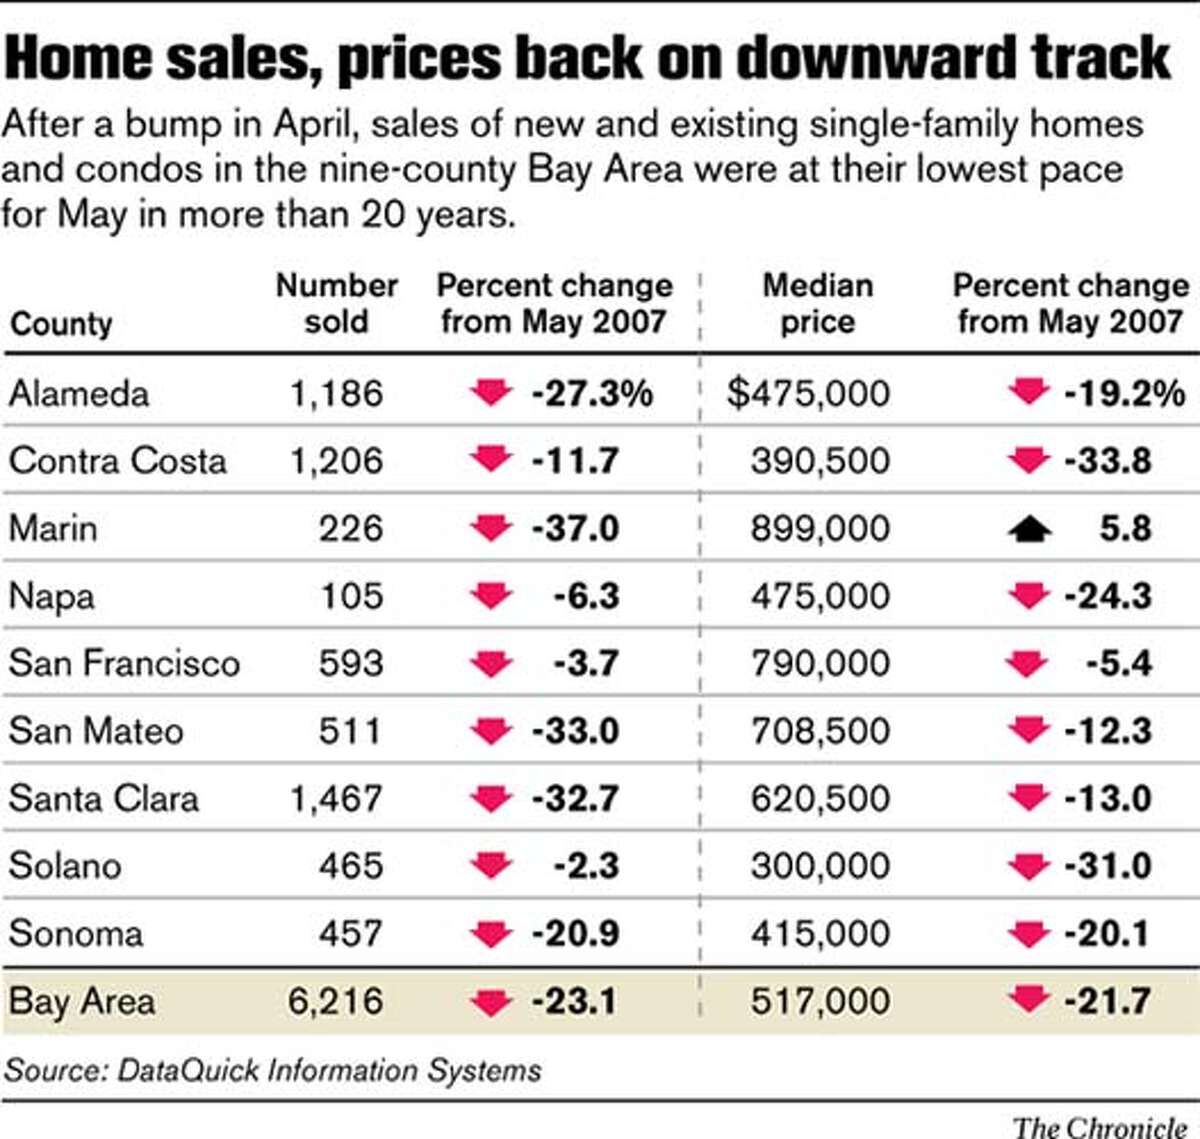 Home sales, prices back on downward track. Chronicle Graphic